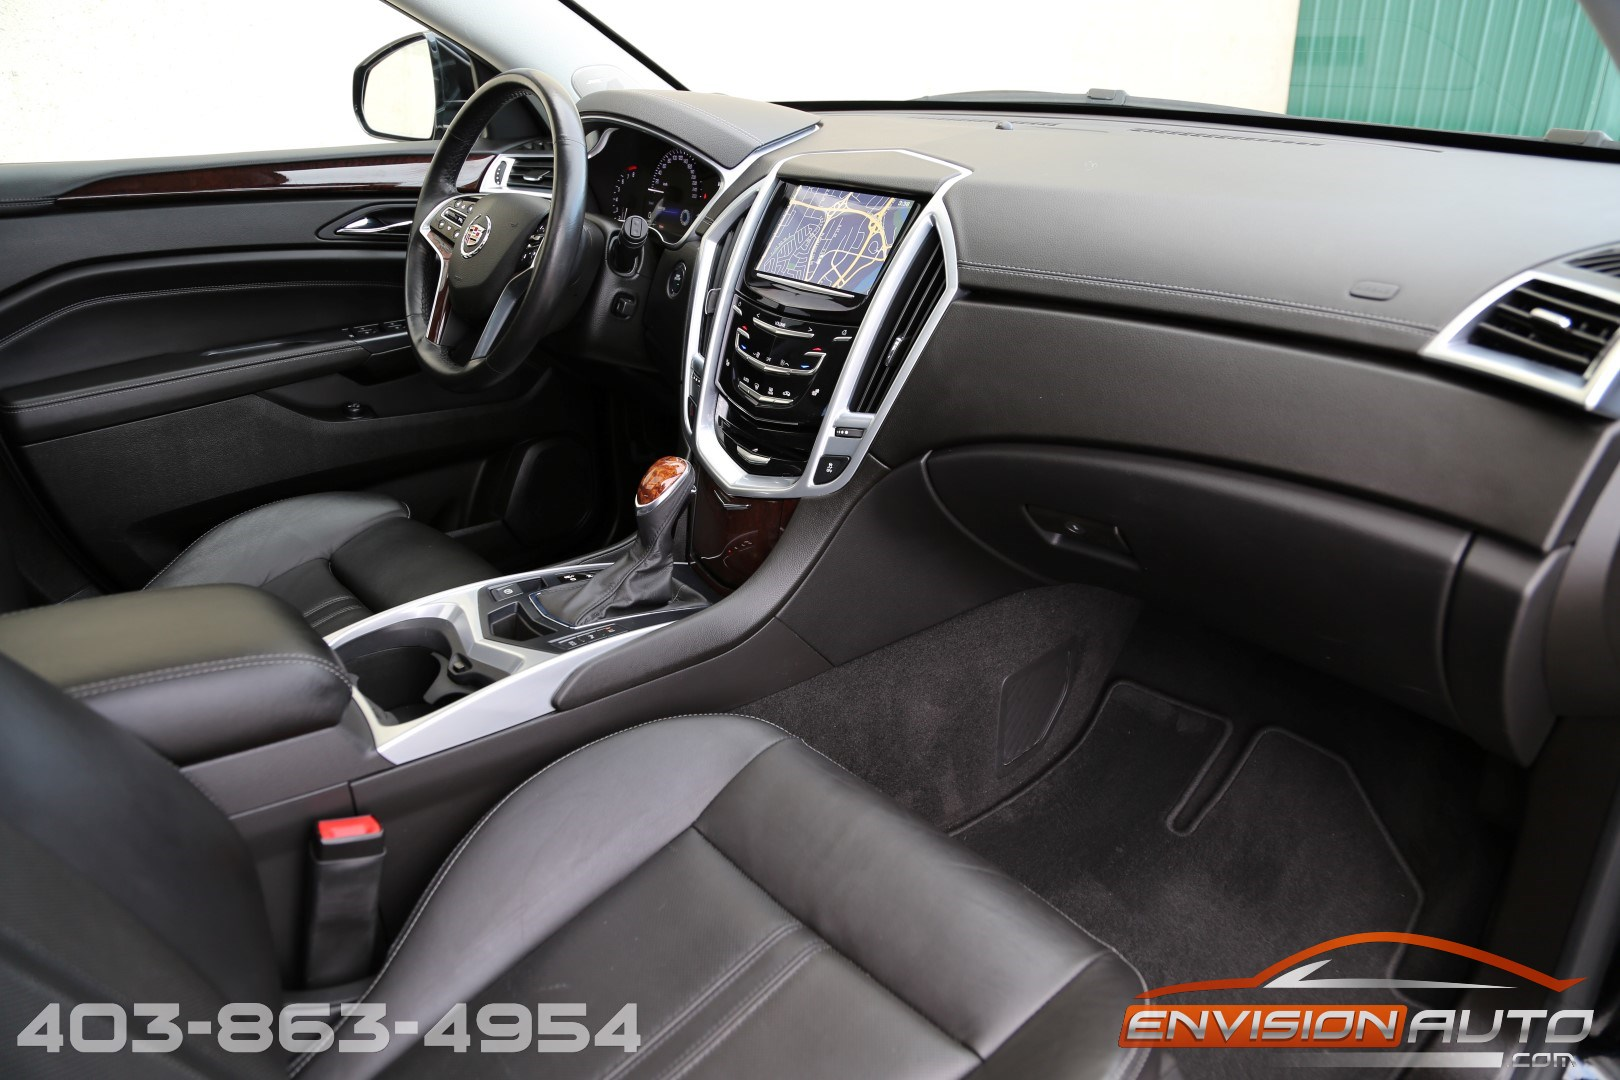 2013 Cadillac SRX4 Luxury Collection AWD - Envision Auto